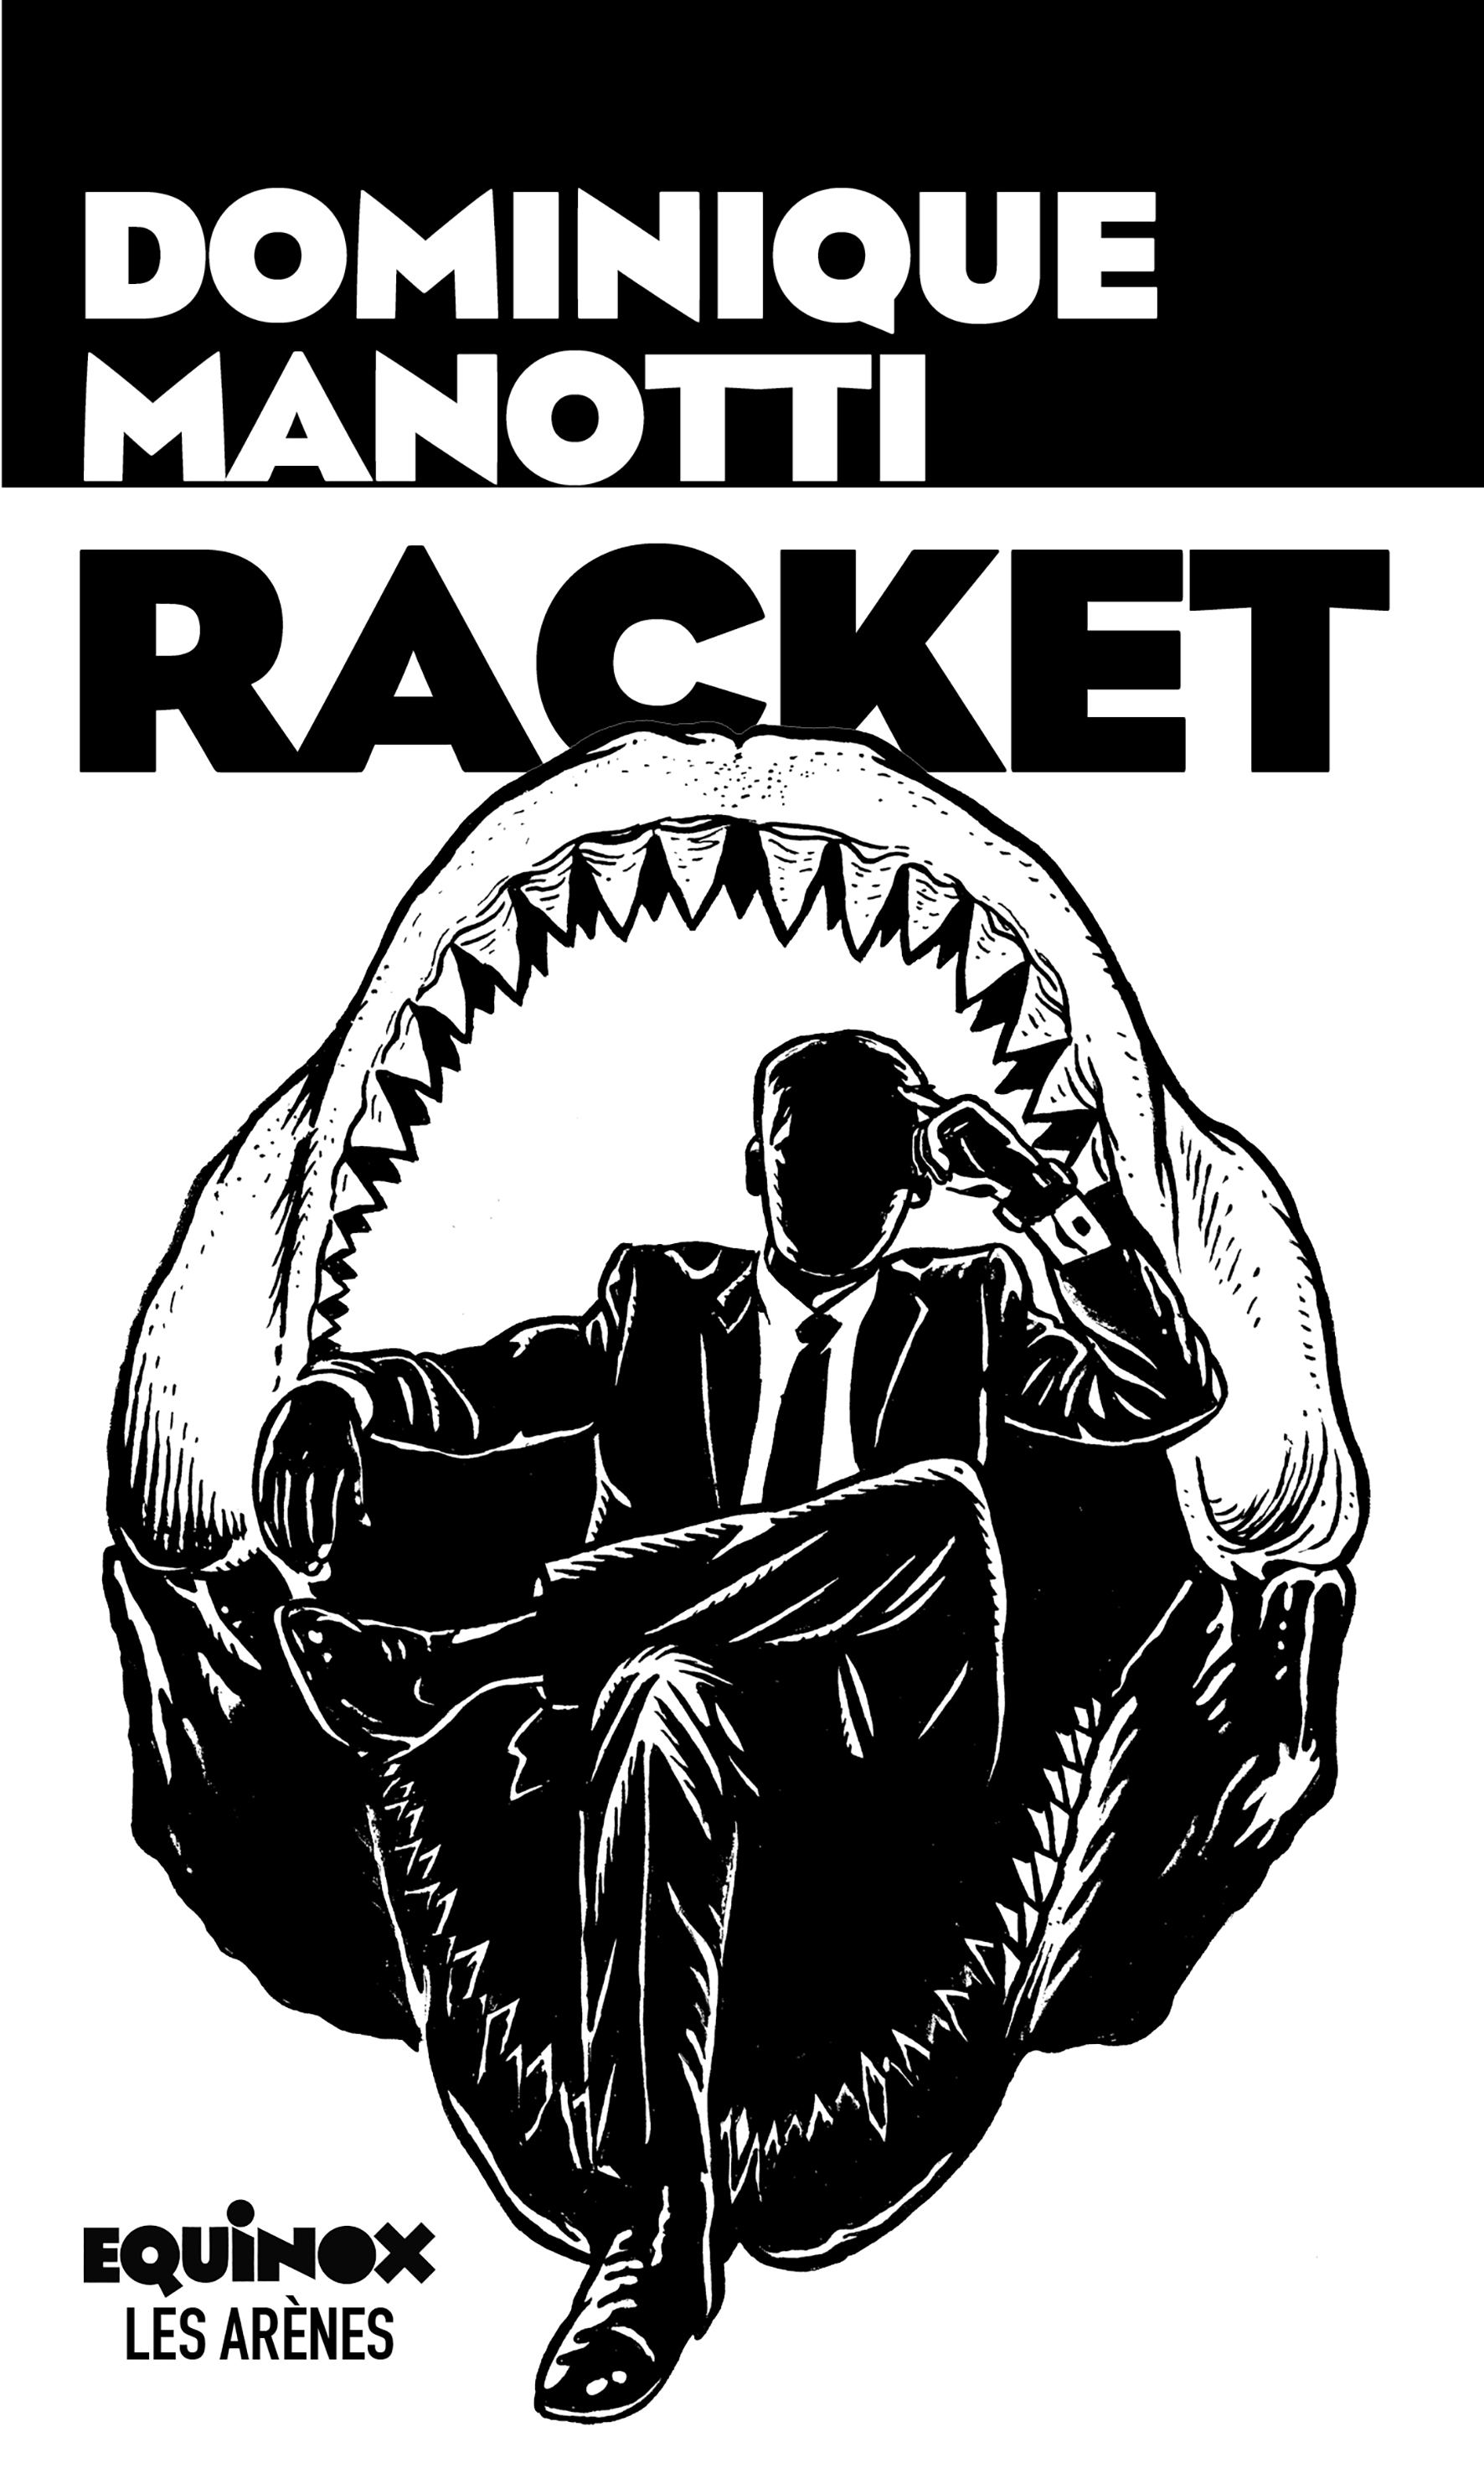 Racket | Manotti, Dominique